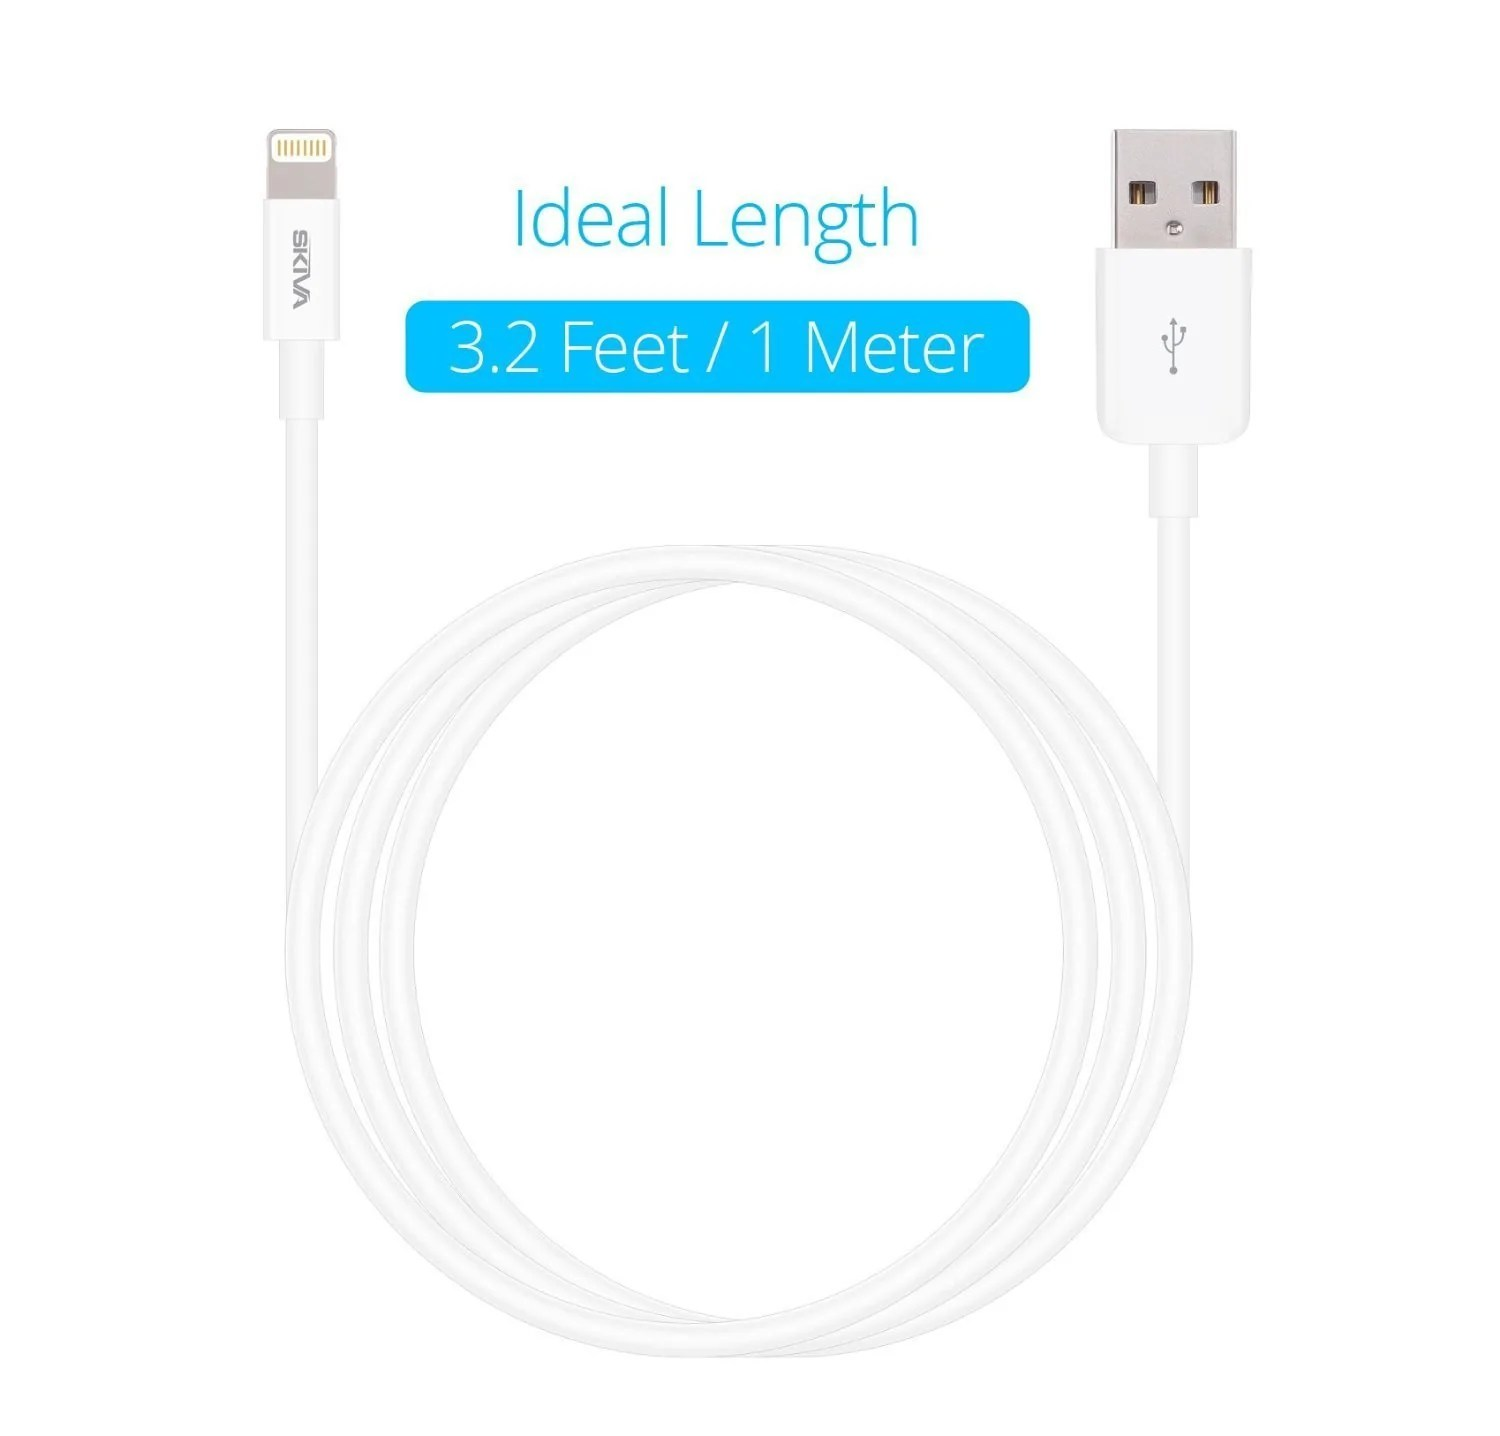 medium resolution of apple mfi certified lightning cables 7 pack skiva usblink 3 2 ft 1m fastest sync and charge 8 pin cable cb144